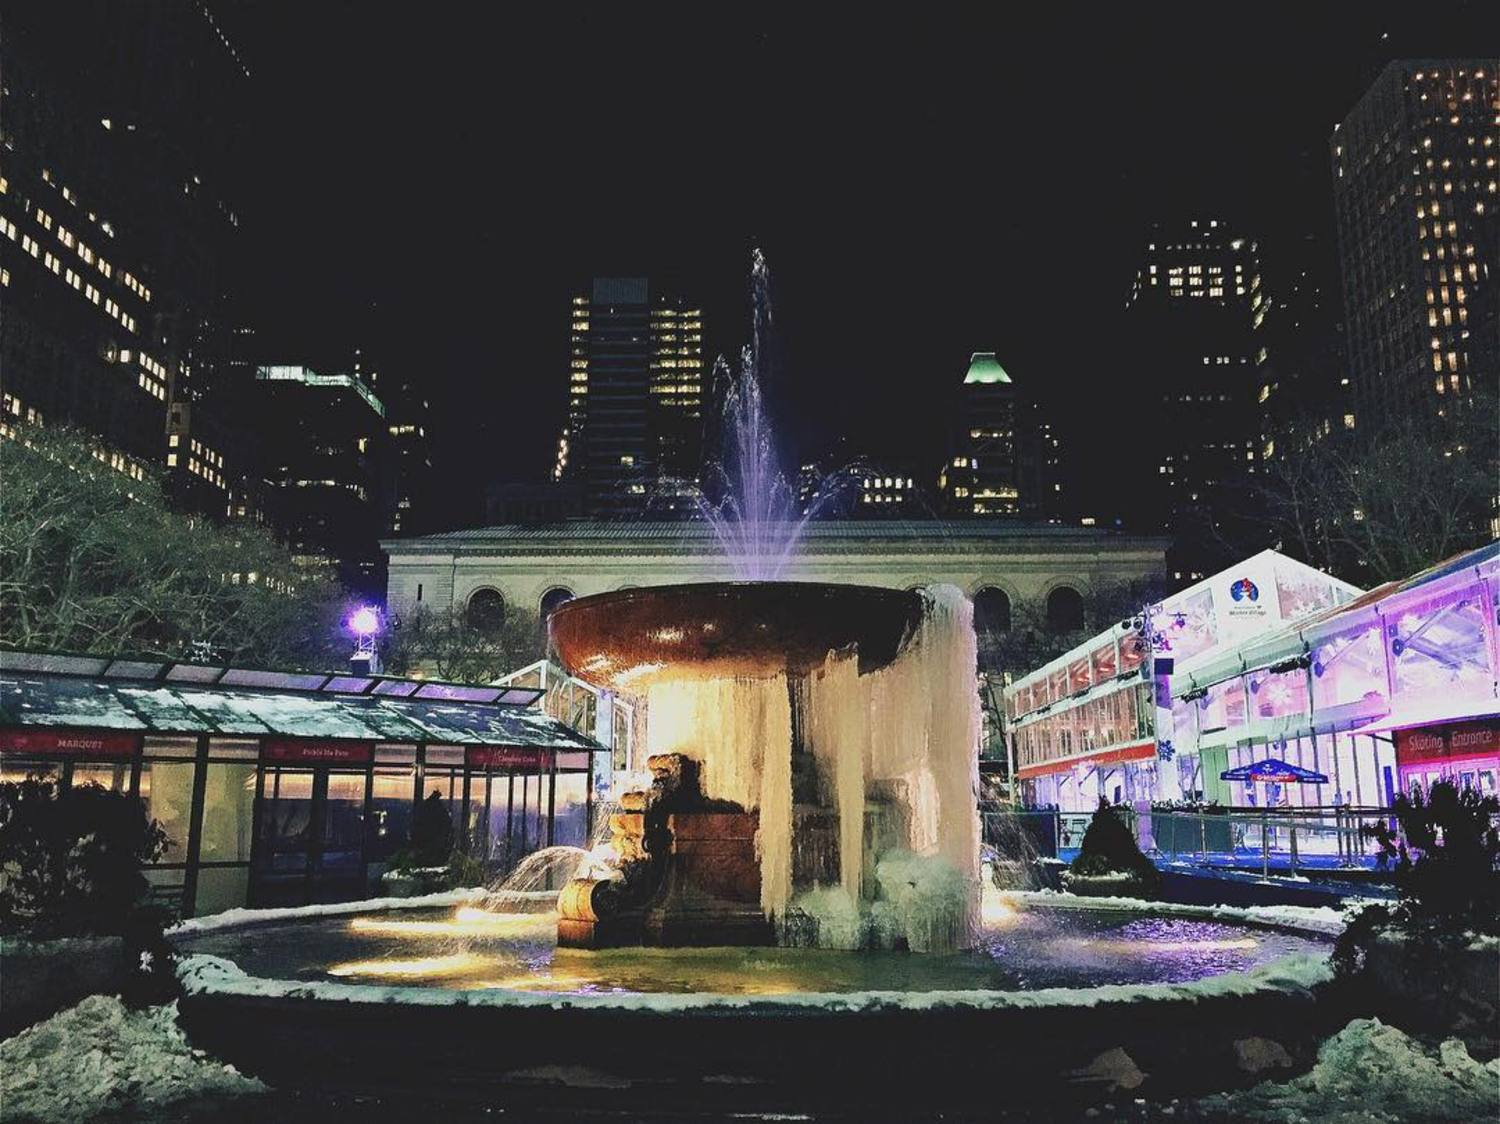 They say it's a #frozenfountain, they say. #iwenttocollegesoicouldworkthegraveyardshift #concretejungle #thehappynow #myofficeisbetterthanyours #brrryantpark #wintervillage #winteriscoming